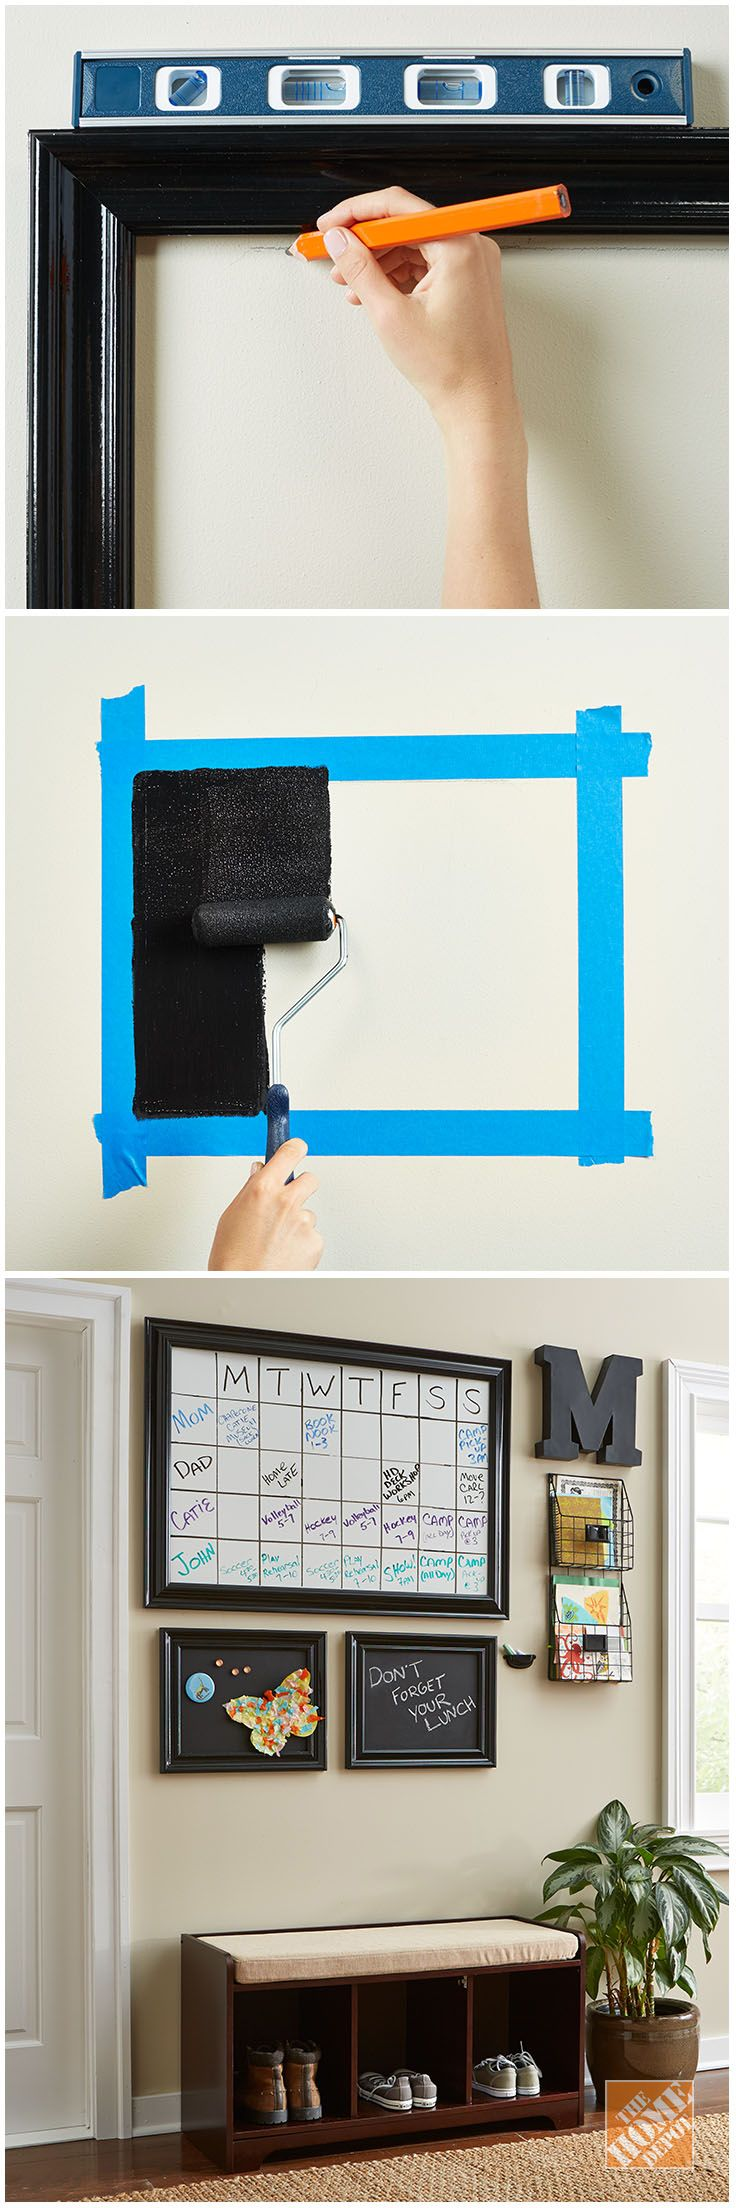 Paint A Family Message Board On Your Wall Home Organization Home Decor Home Diy